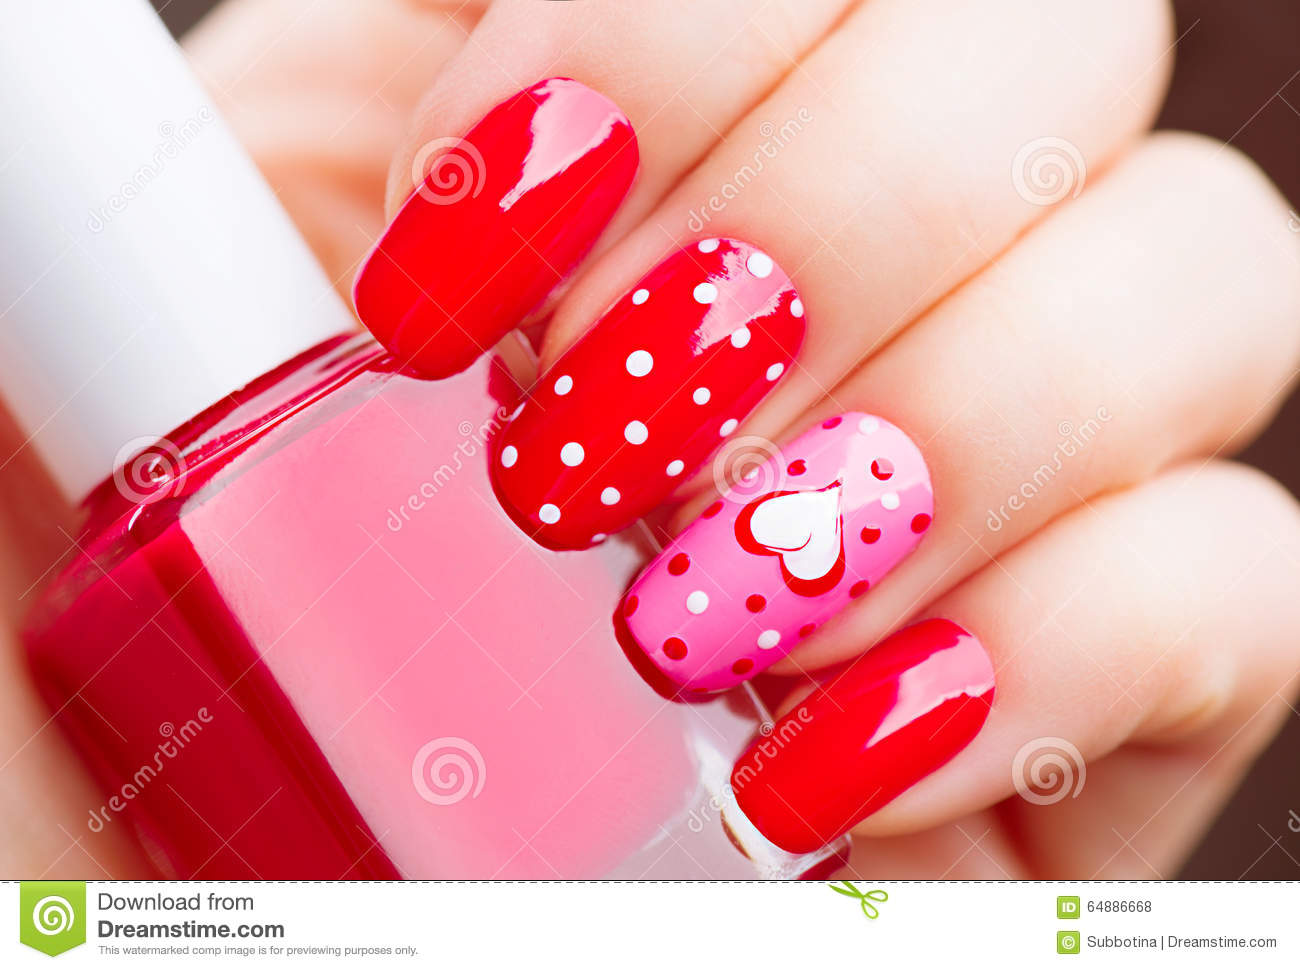 Valentines Day holiday manicure with painted hearts and polka dots